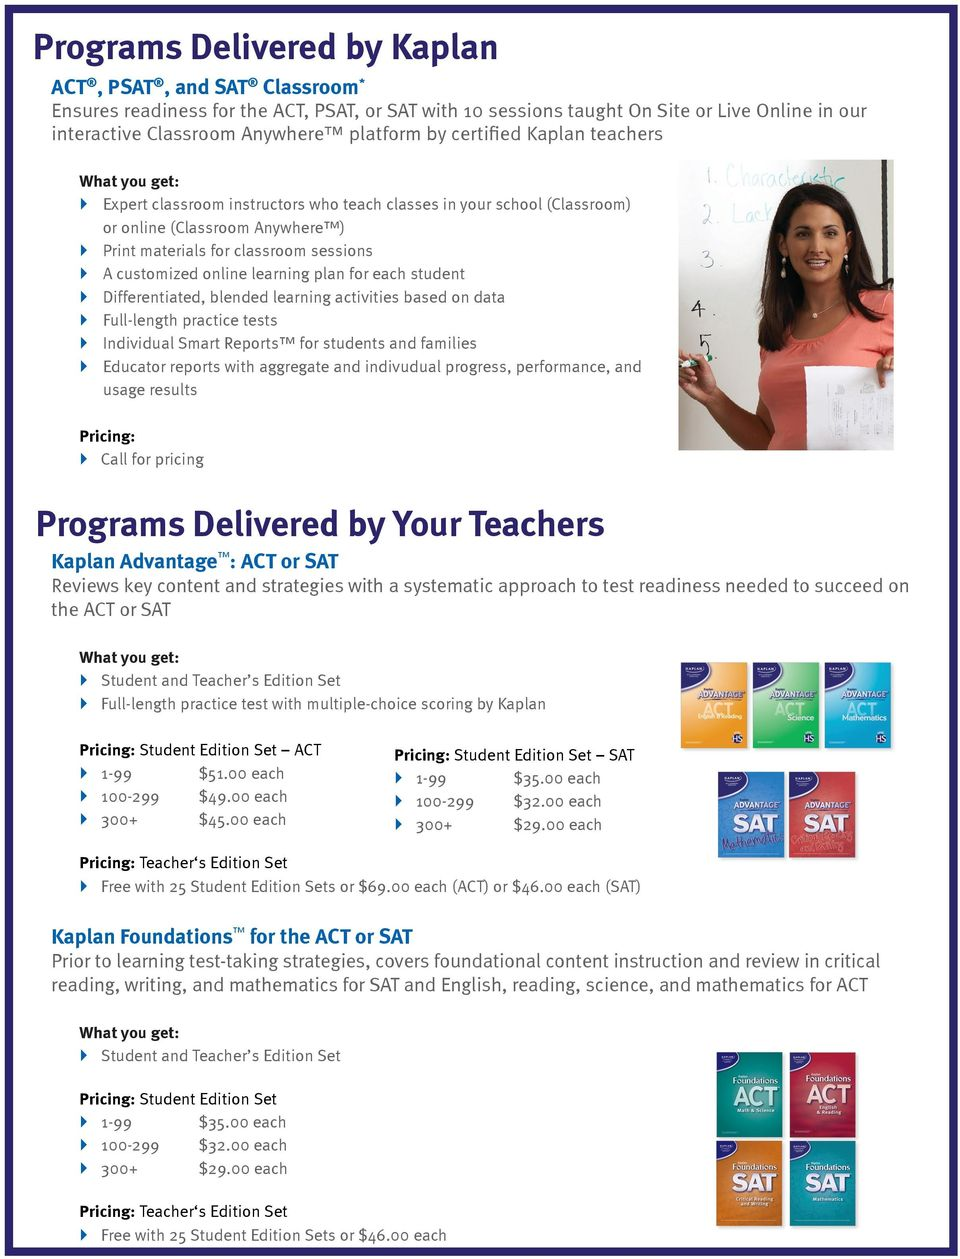 learning plan for each student Differentiated, blended learning activities based on data Full-length practice tests Individual Smart Reports for students and families Educator reports with aggregate